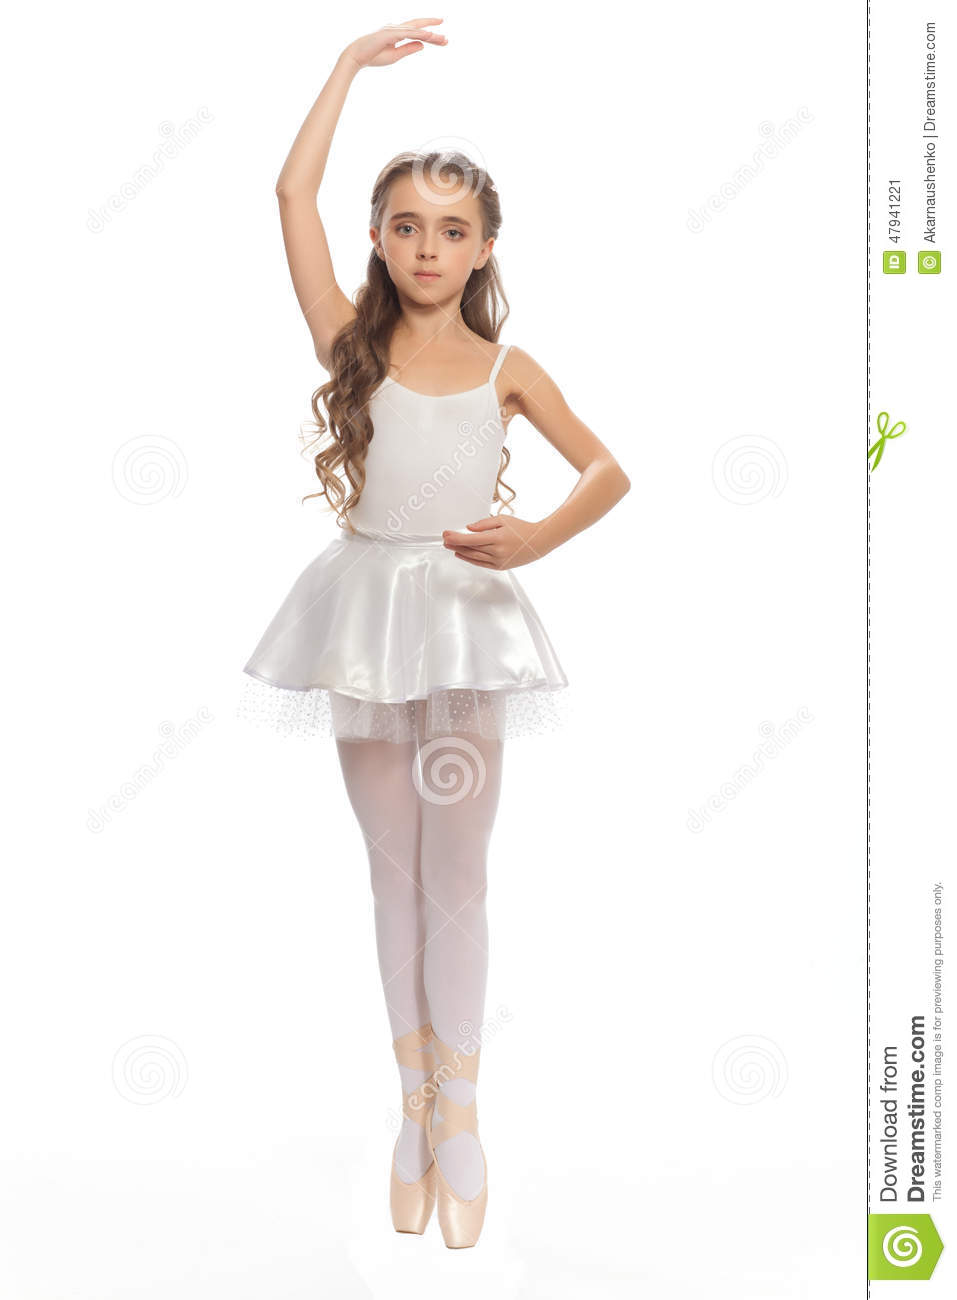 young girl in her dance clothes reaching down to touch her